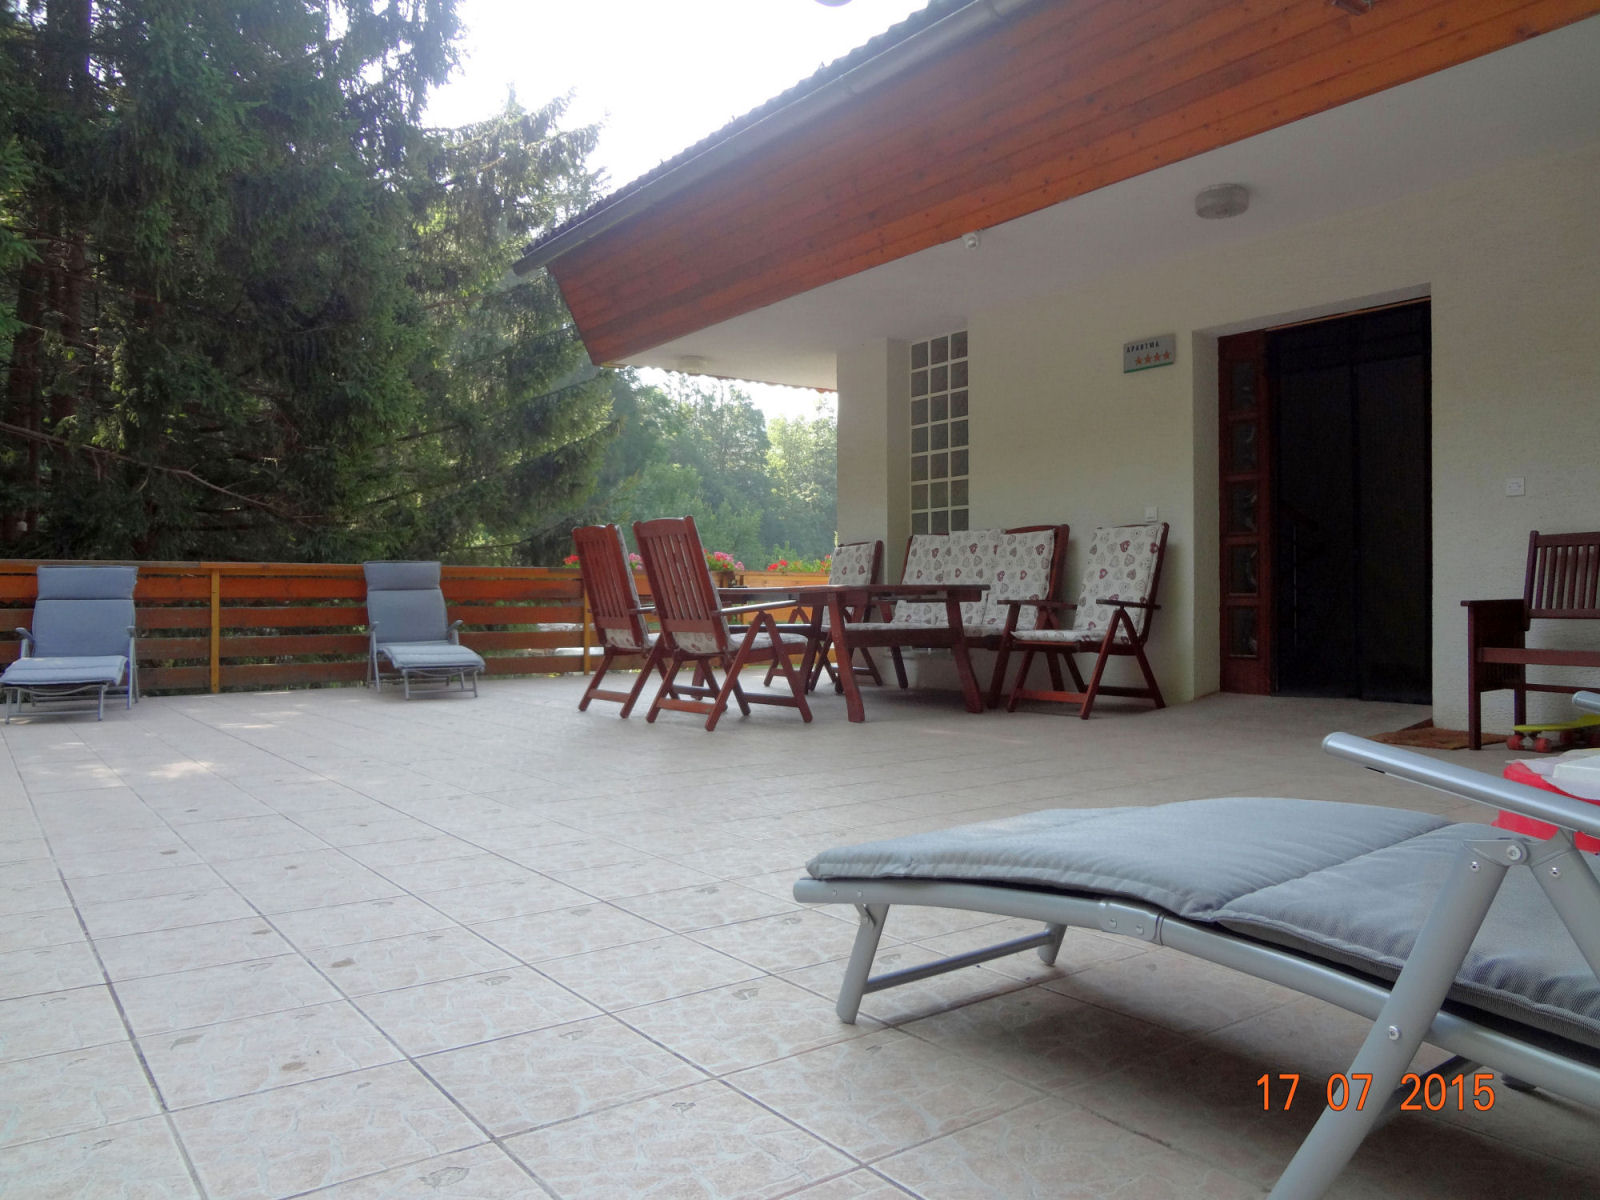 Guests can use a terrace behind the house.